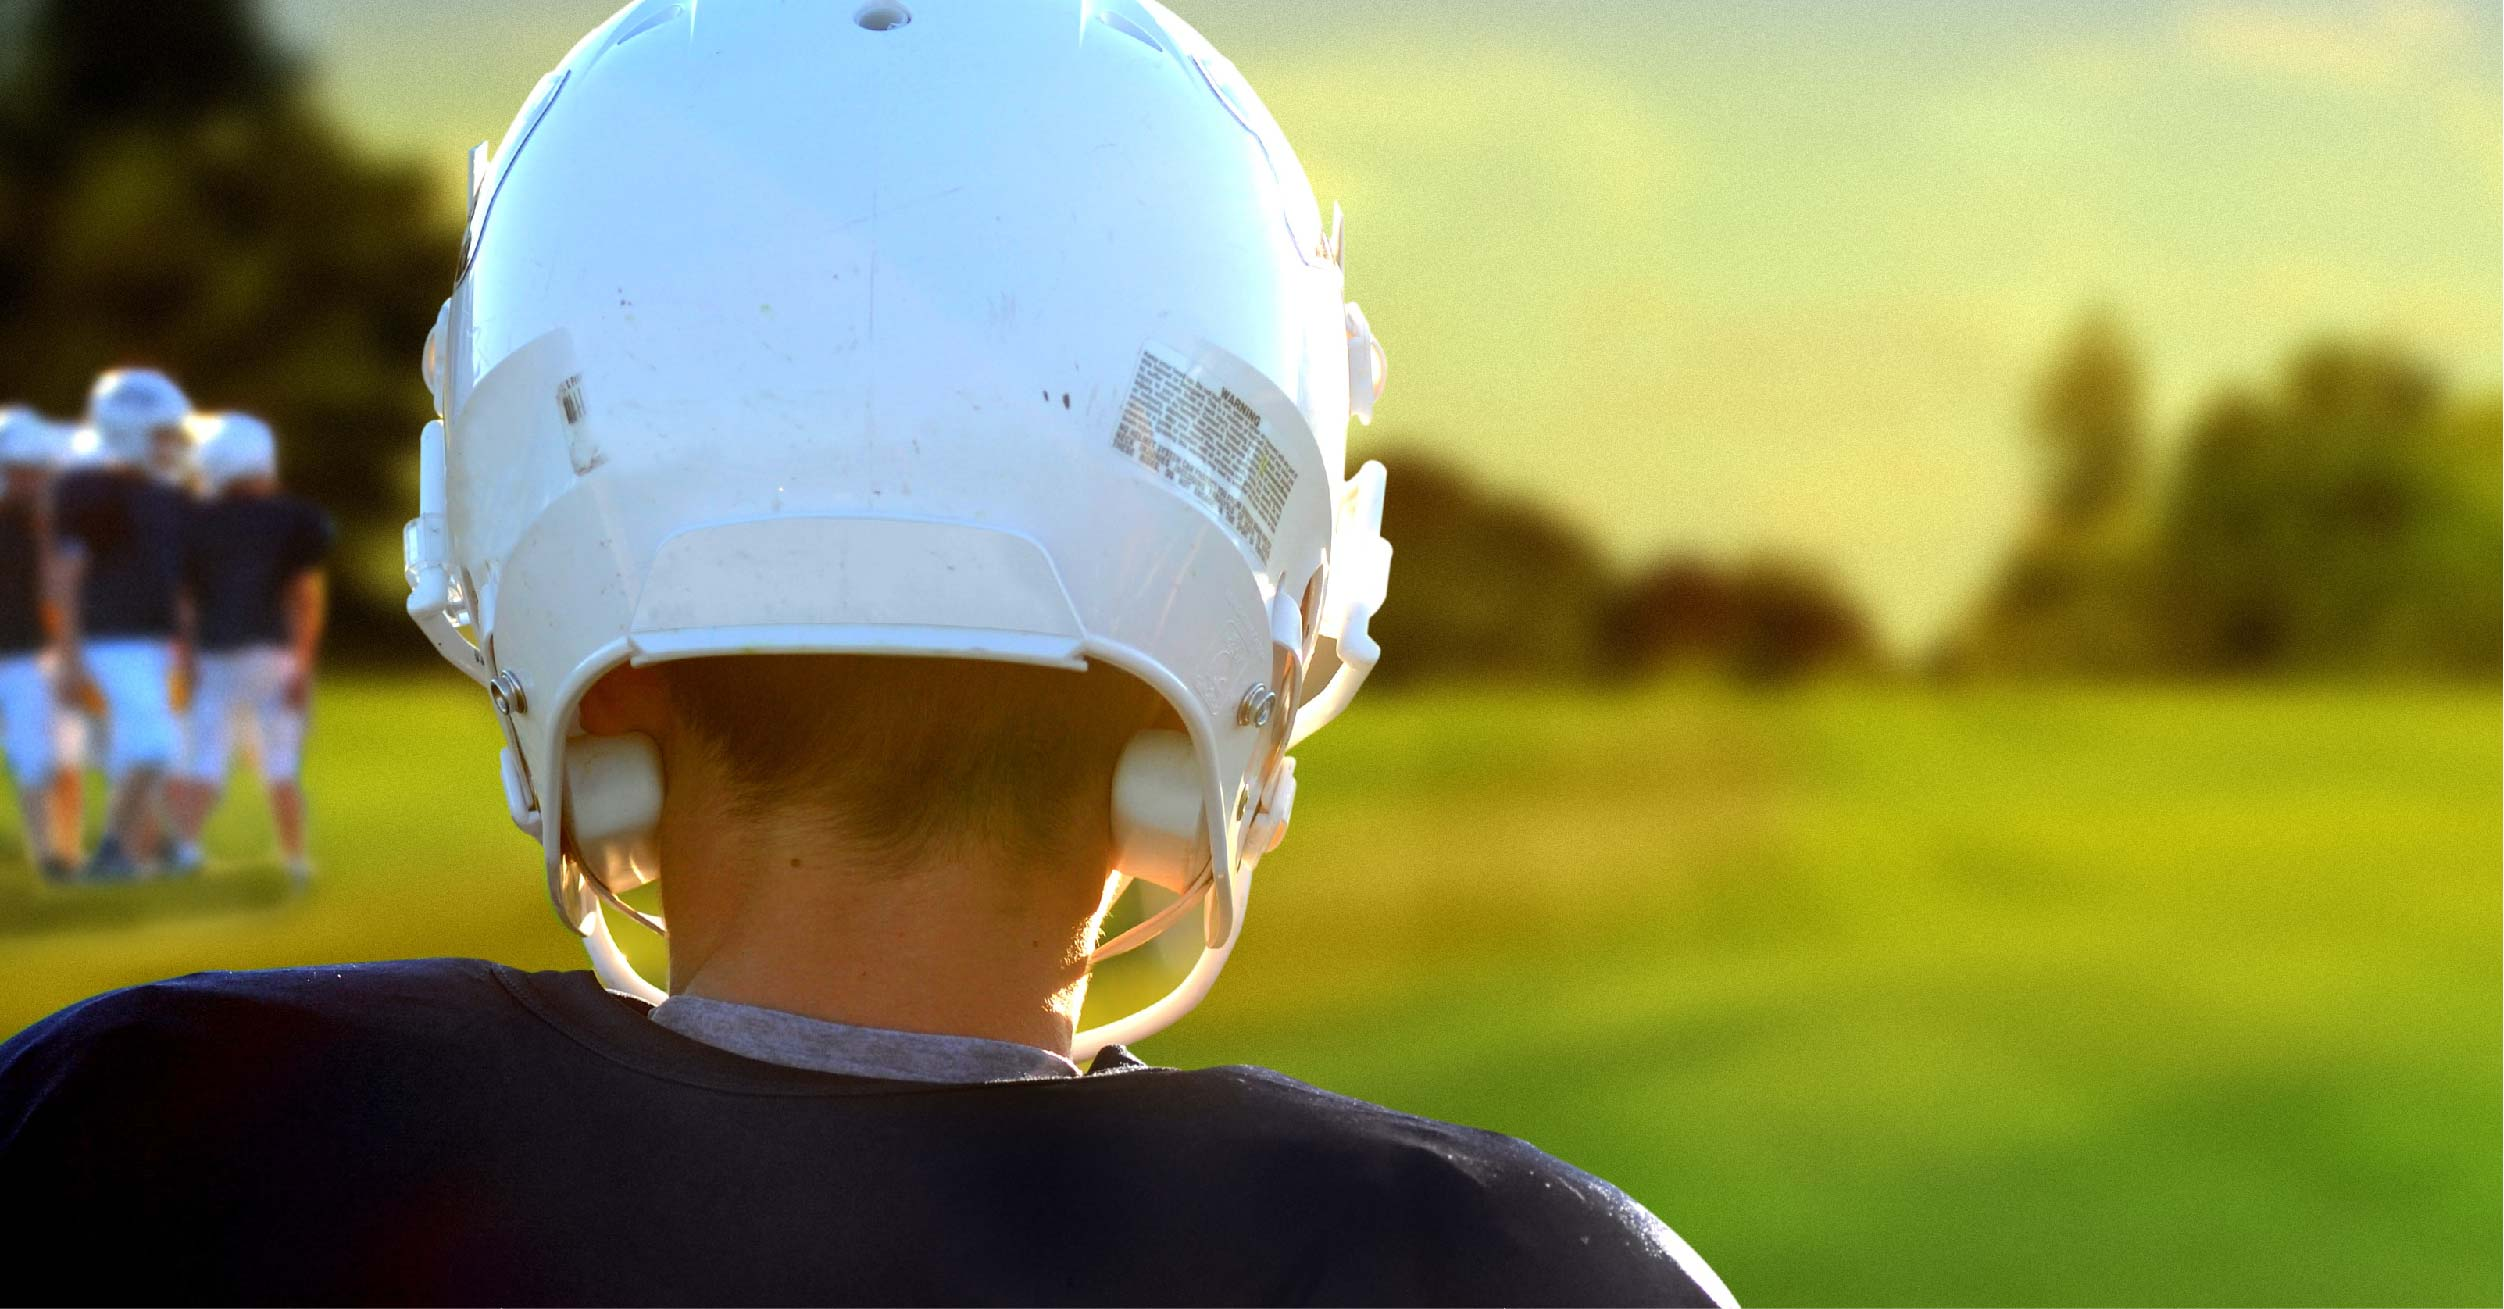 Saliva May Be the Key to Concussion Diagnosis